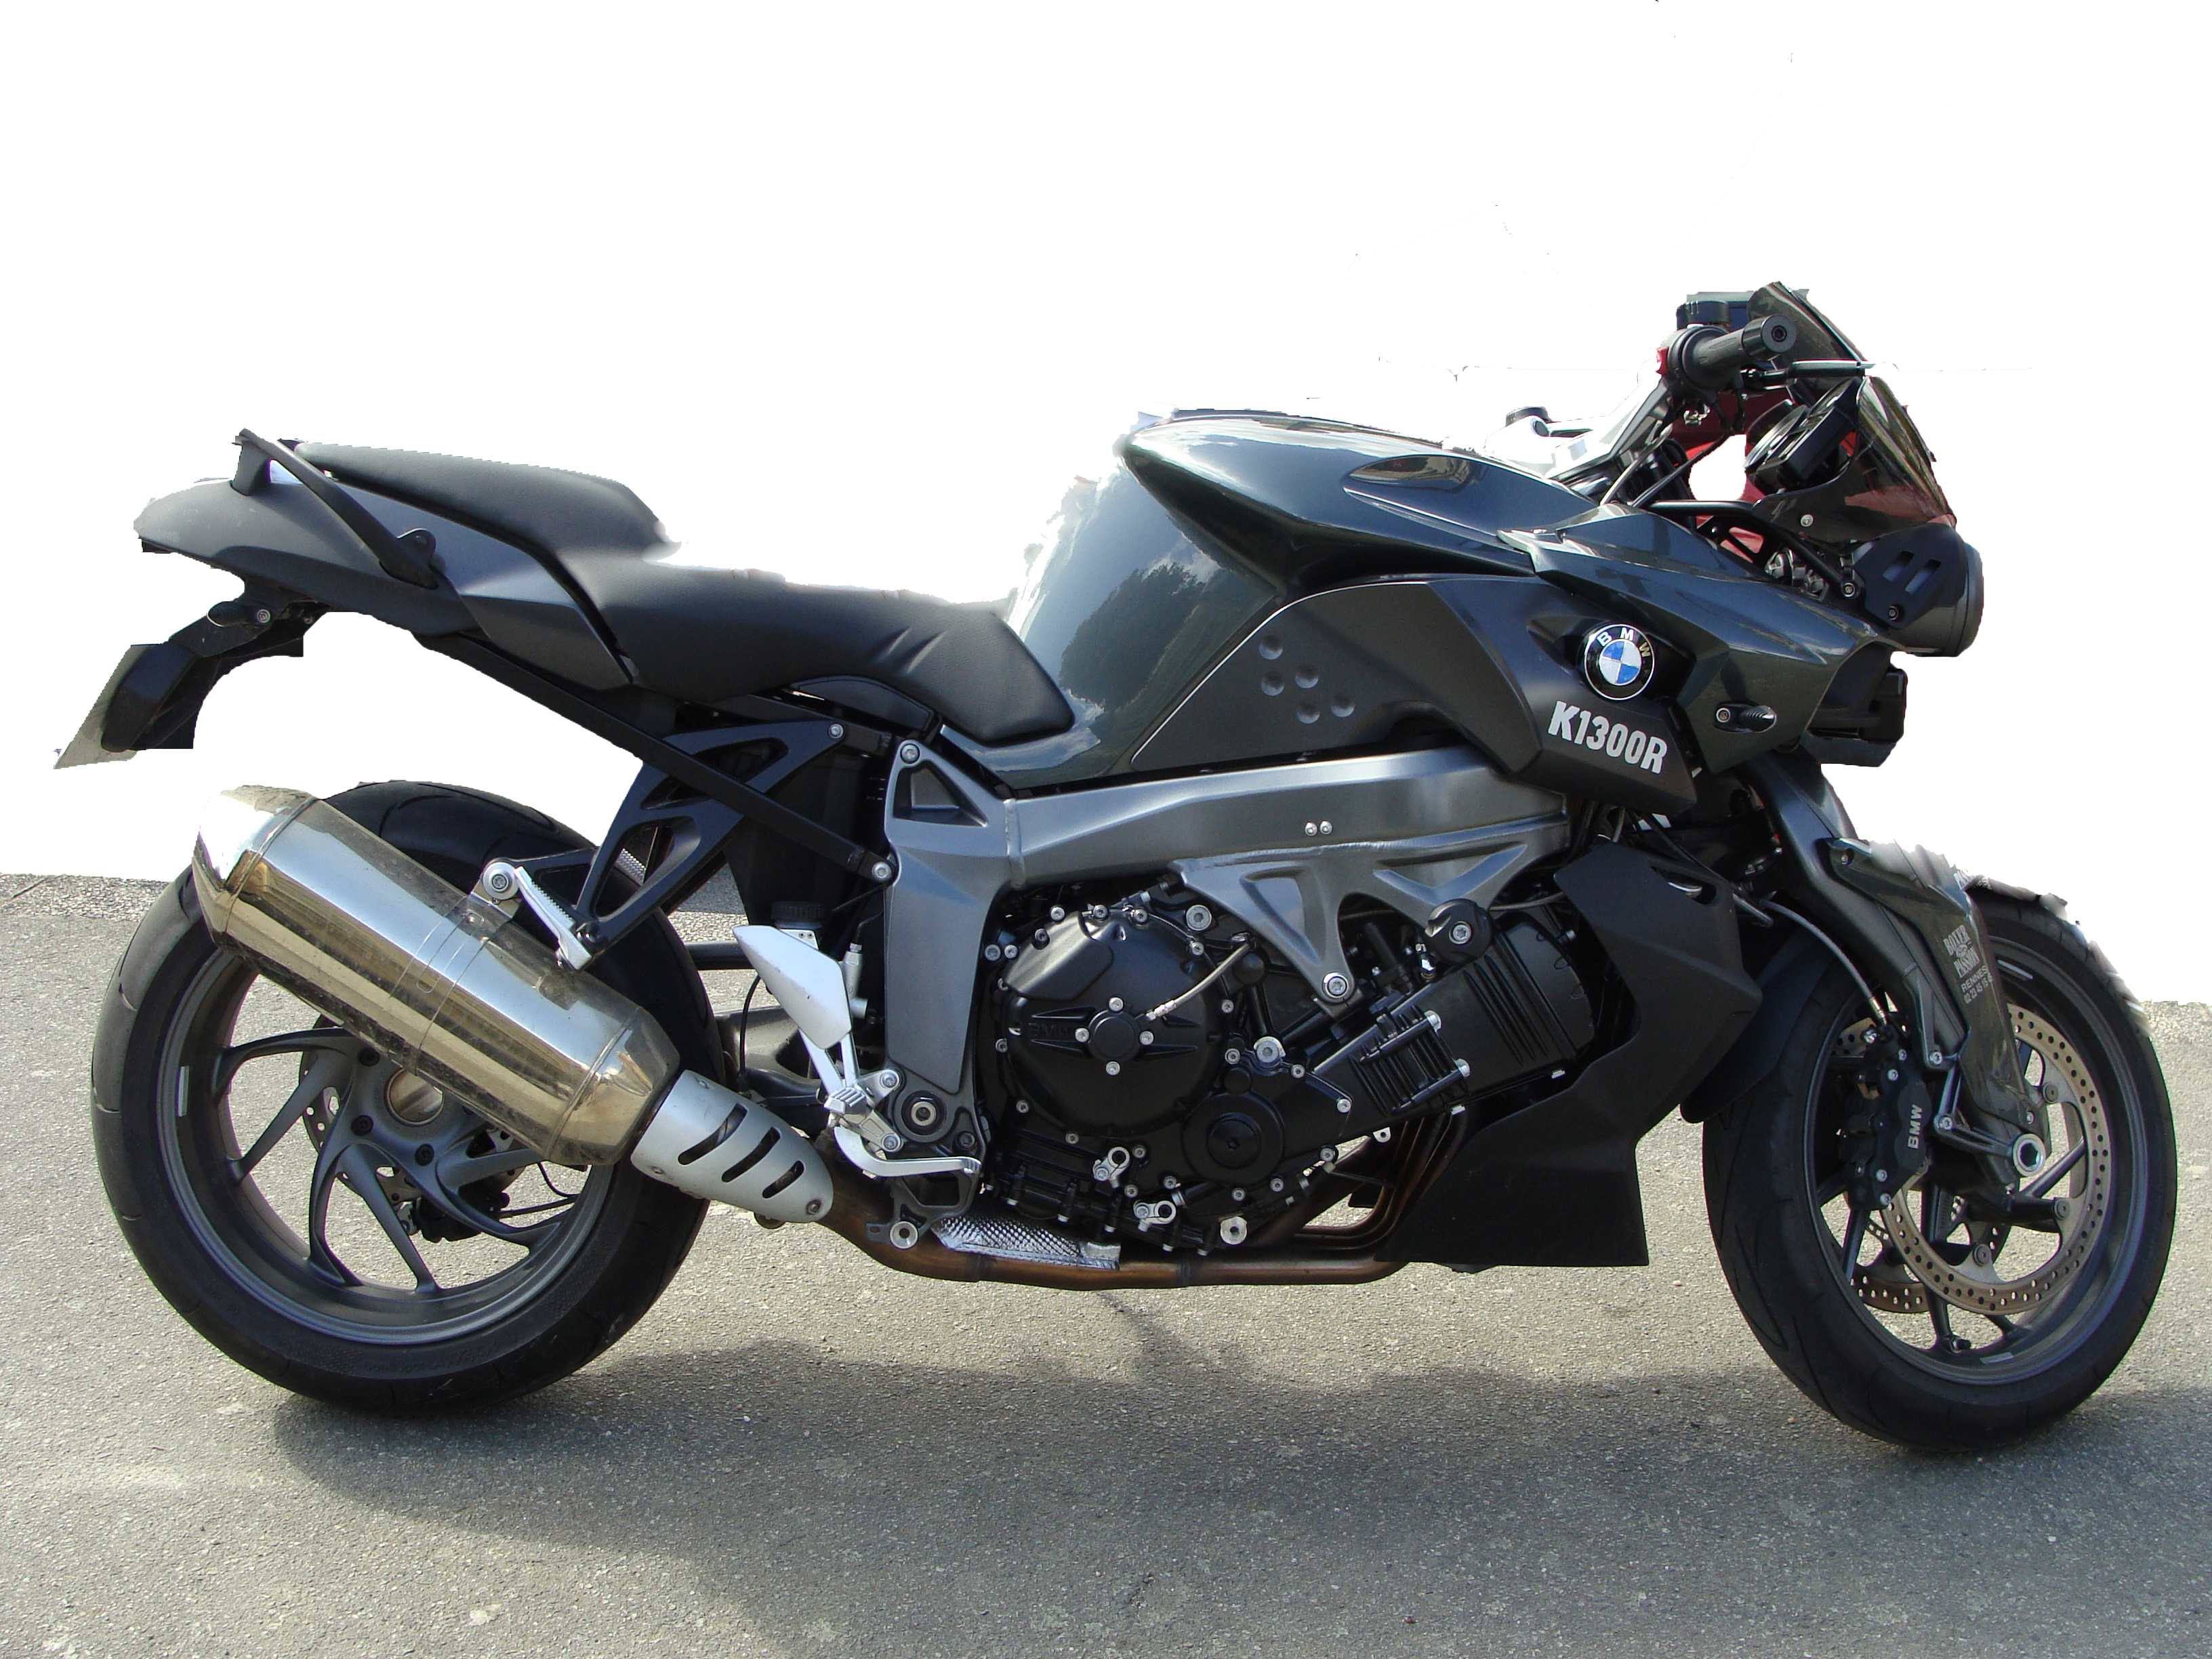 Bmw K1300r Wikipedia 2000 R850c And R1200c Electrical System